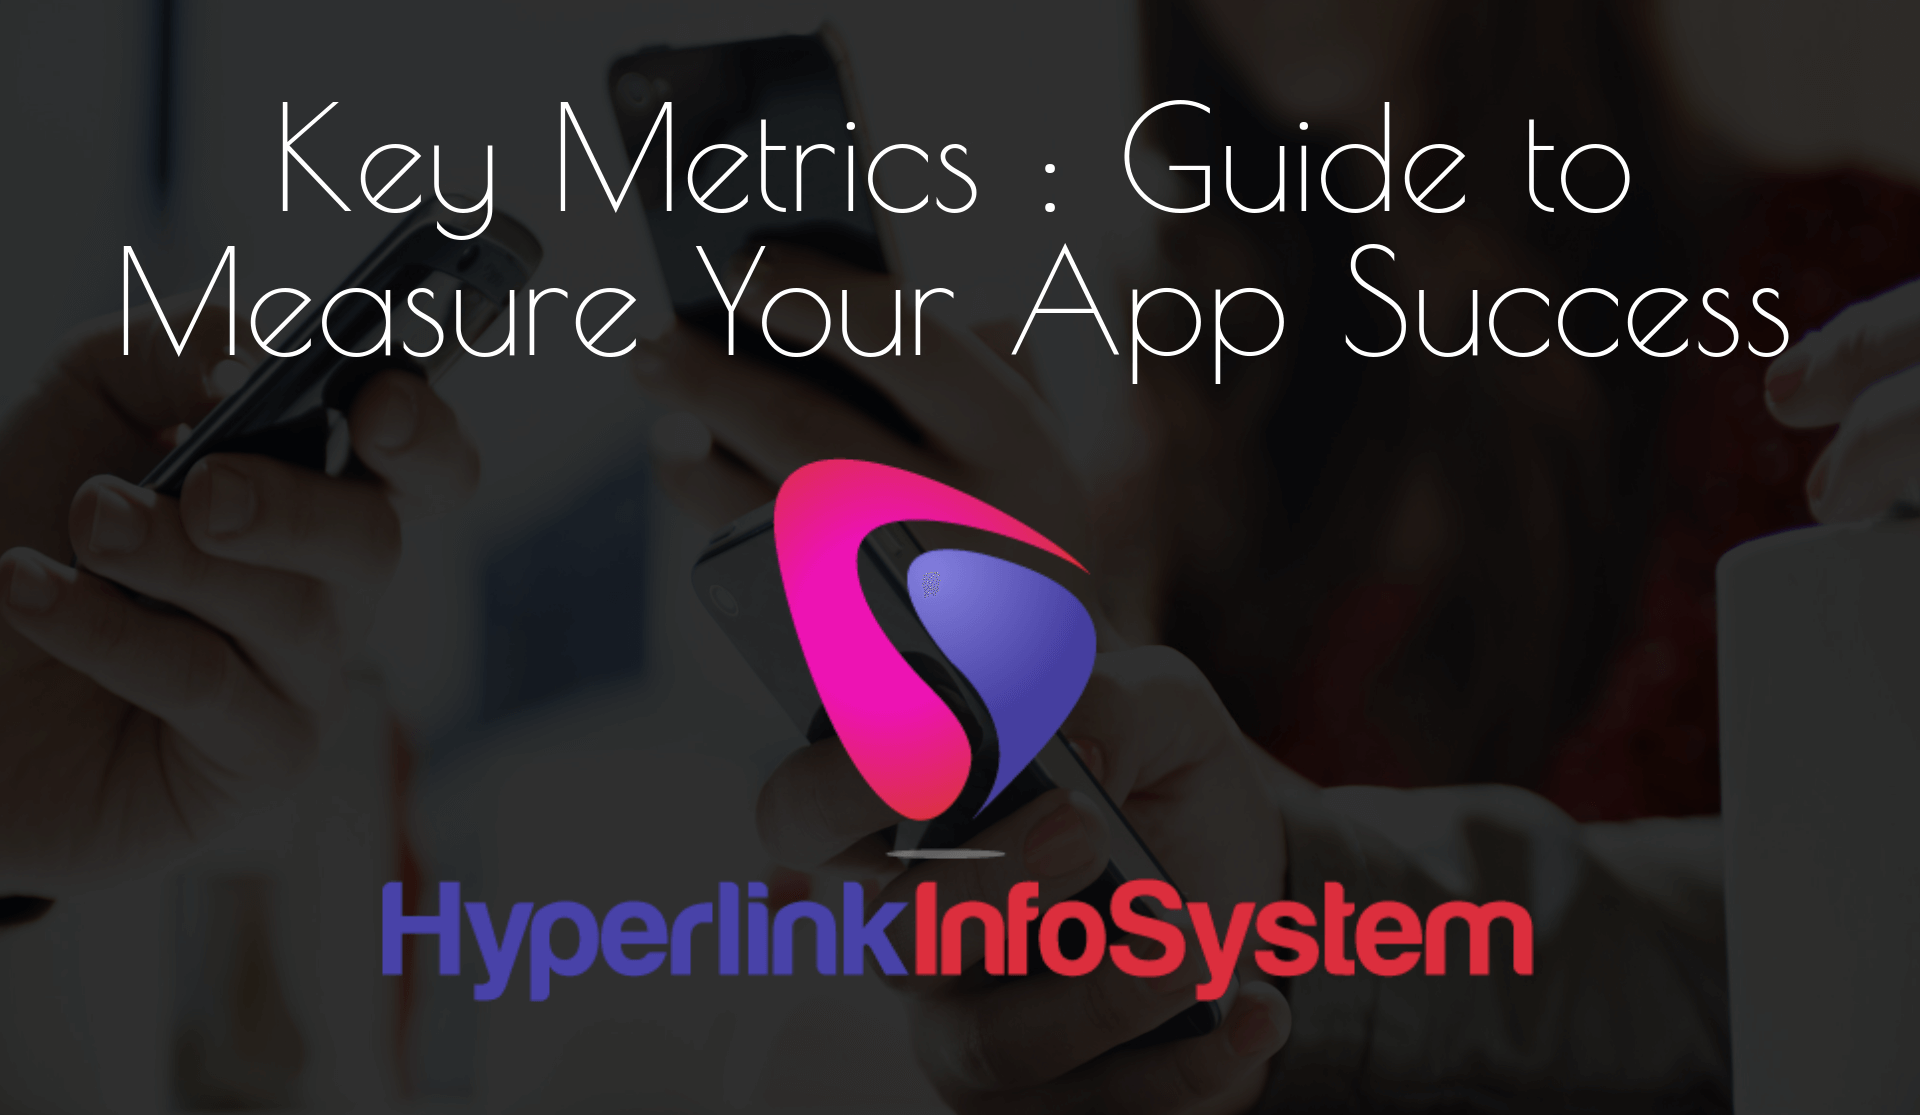 Key Metrics: Guide to Measure Your App Success